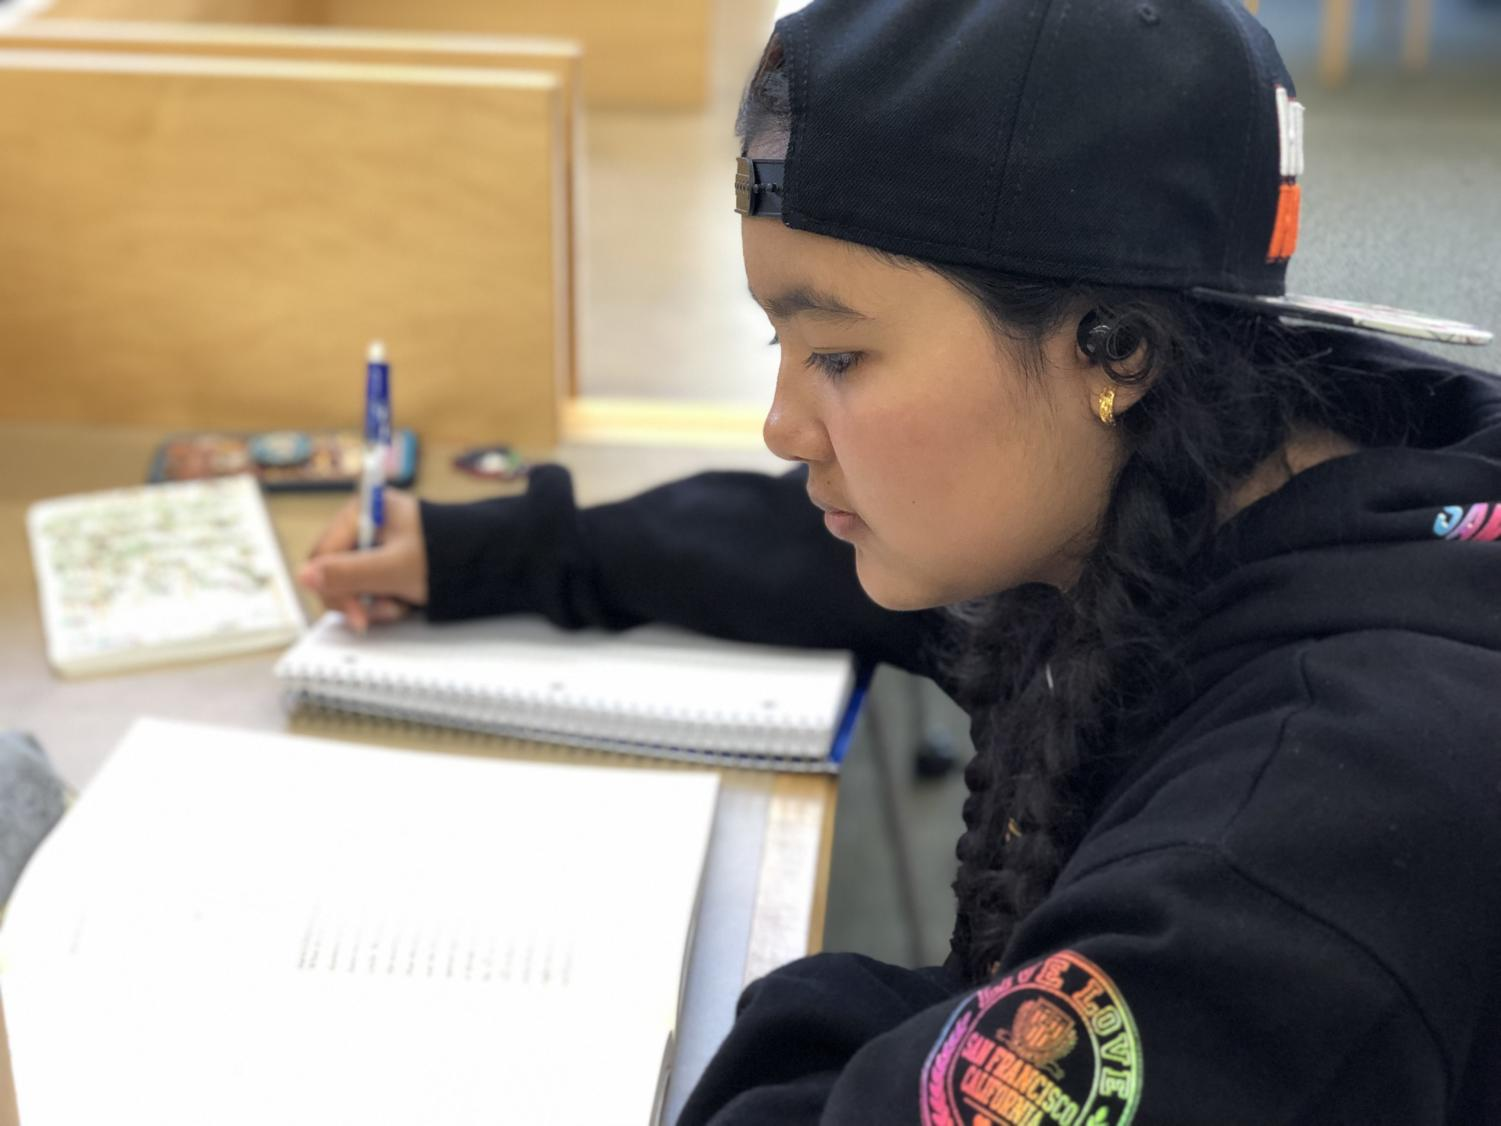 Sophomore Maya Henry prepares for the PSAT using a PSAT prep book from The Princeton Review at the Belmont Library.